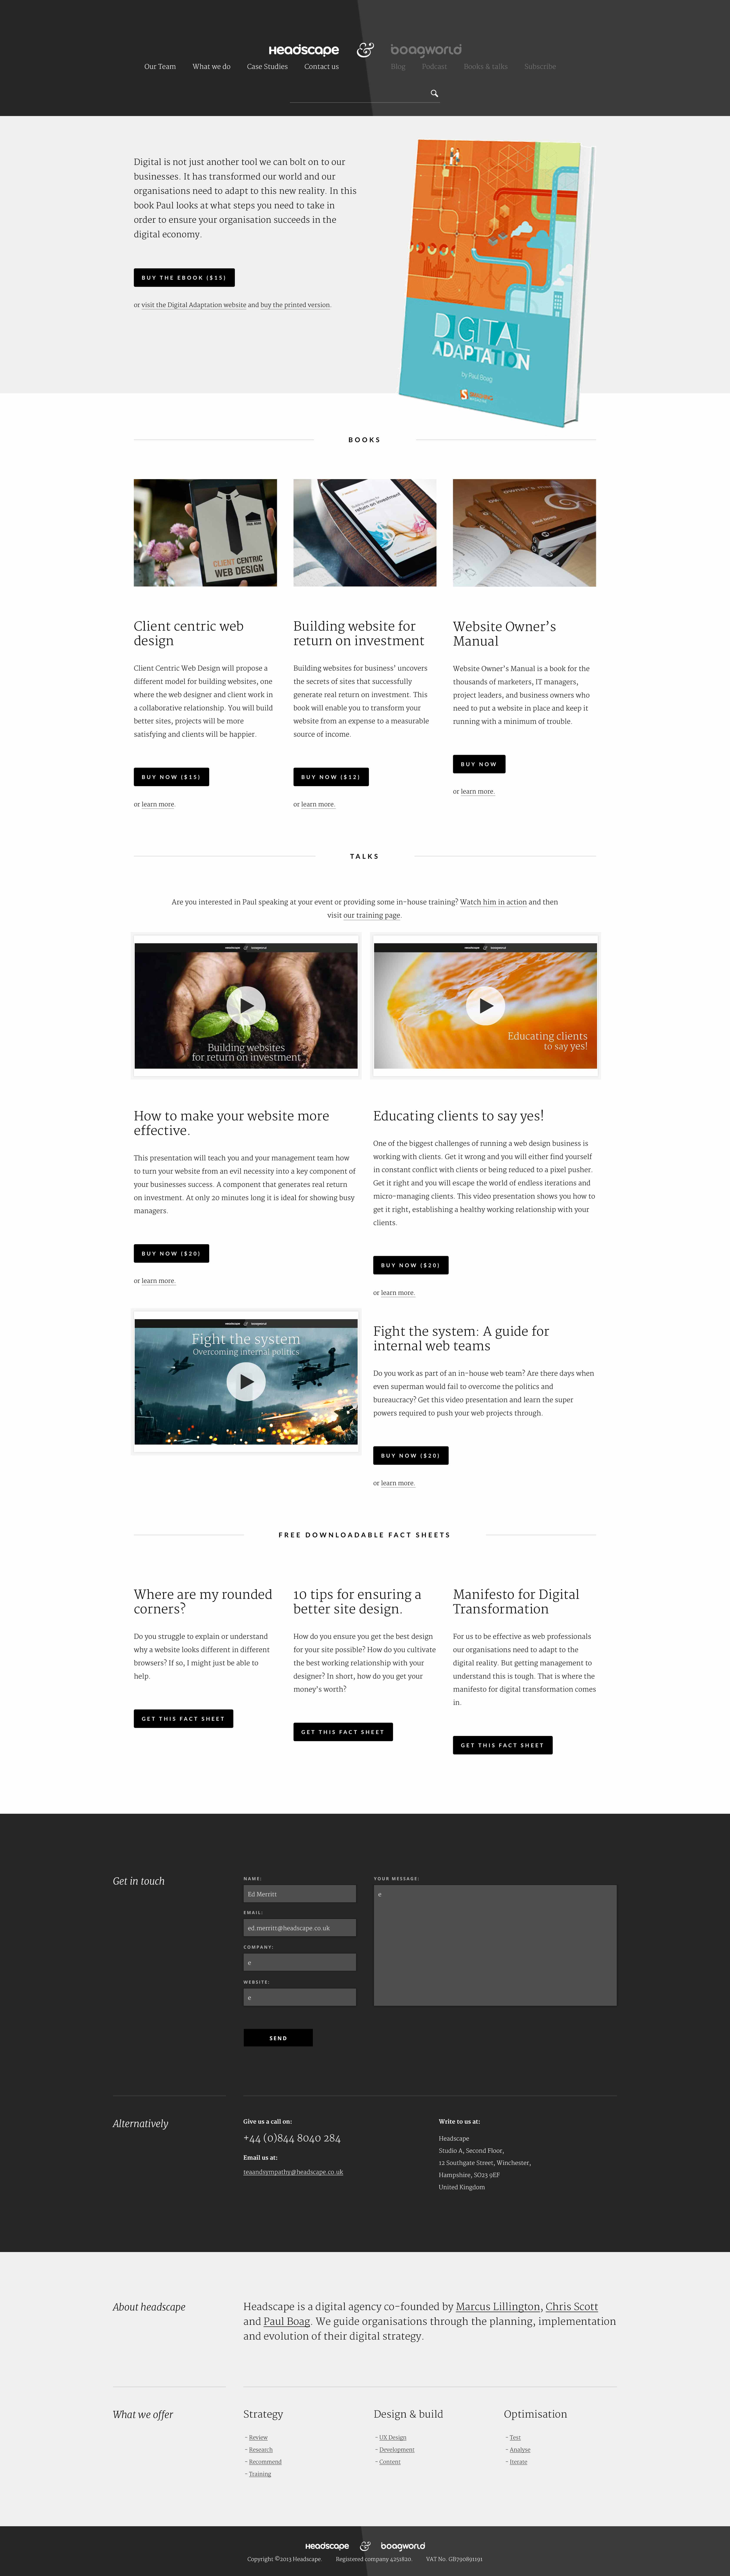 Headscape and Boagworld - Website design